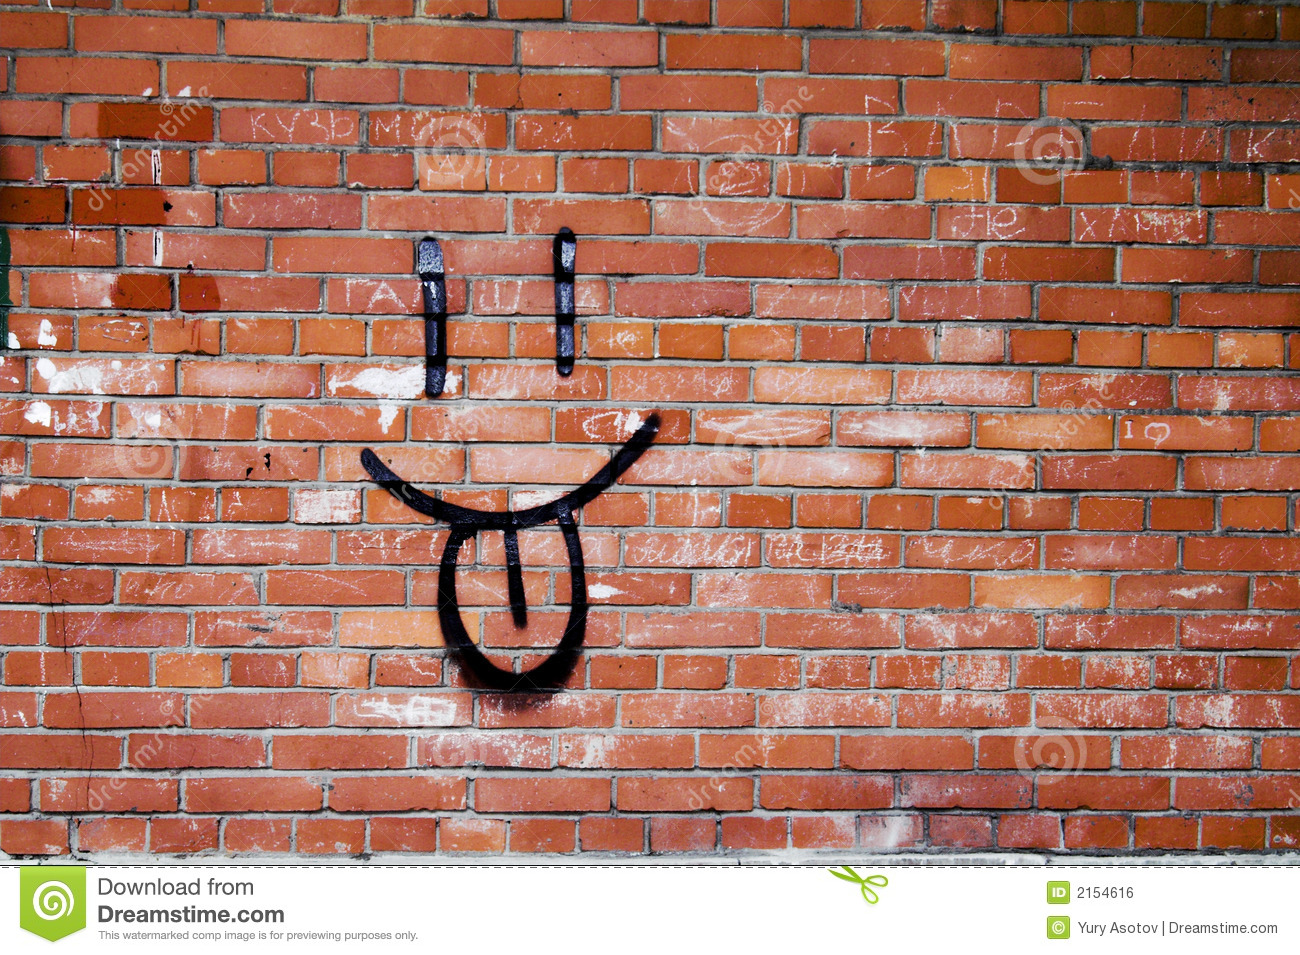 Graffiti wall decals name high resolution photographs